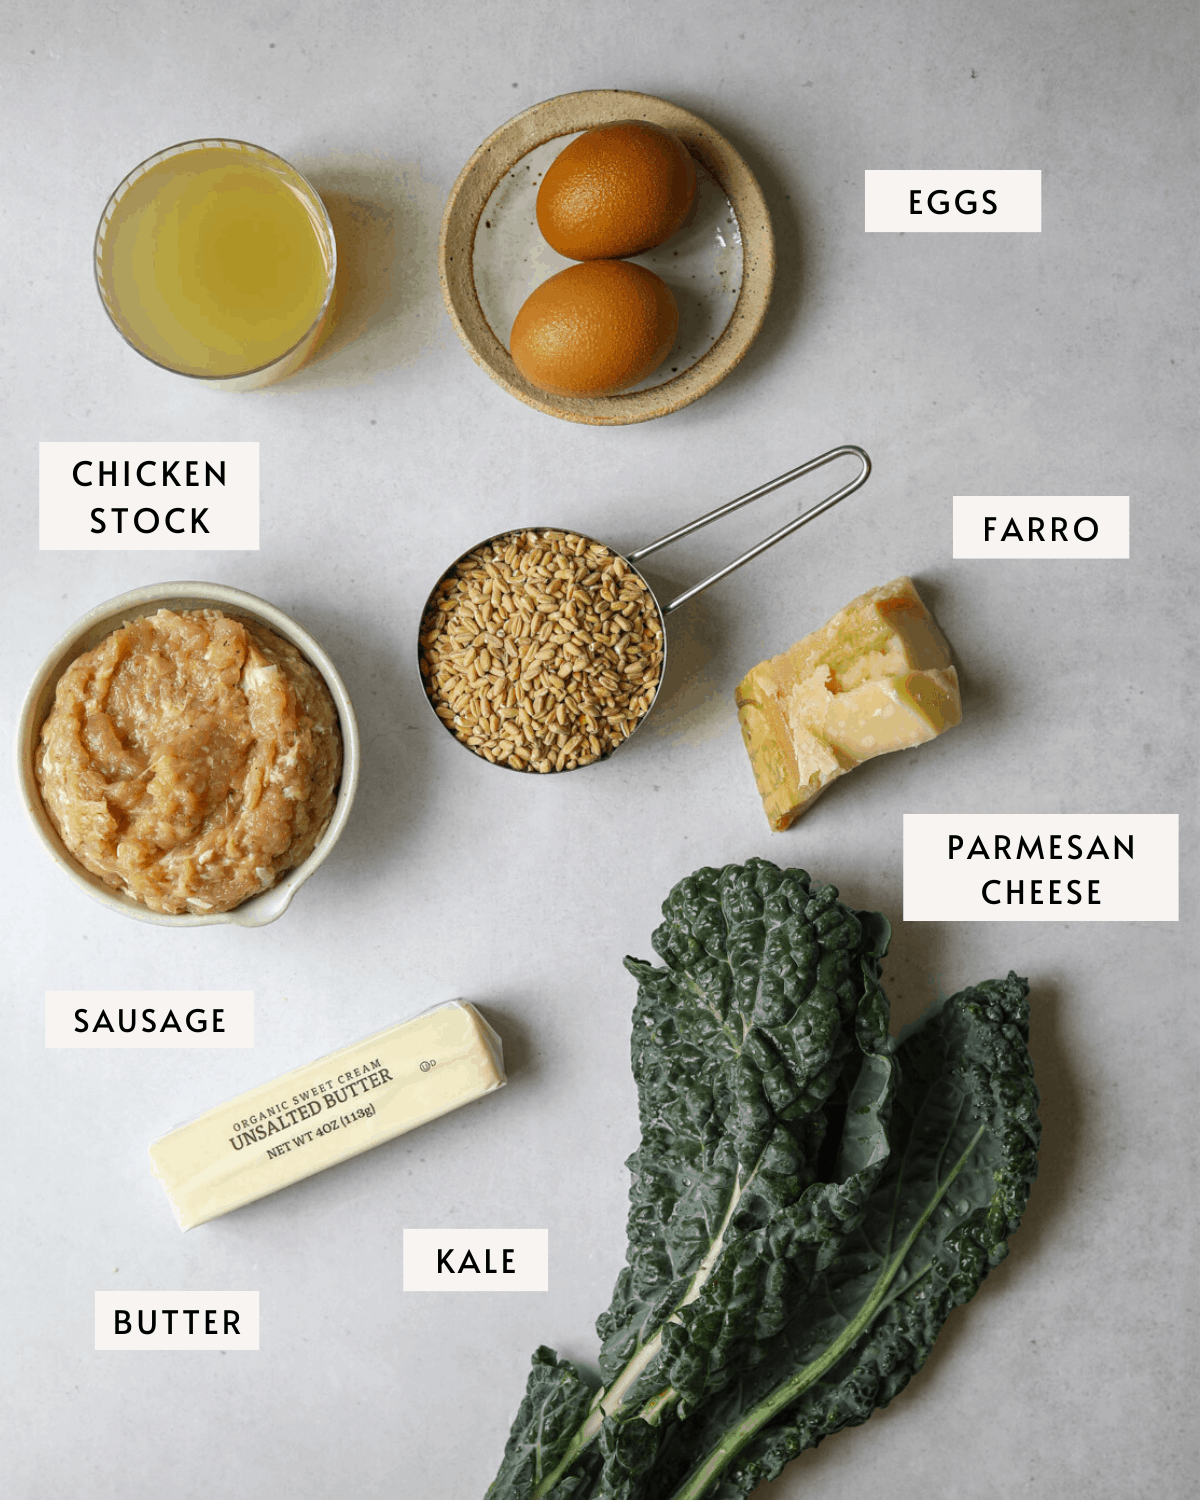 recipe ingredients individually portioned; kale, eggs, farro, parmesan cheese, sausage and butter